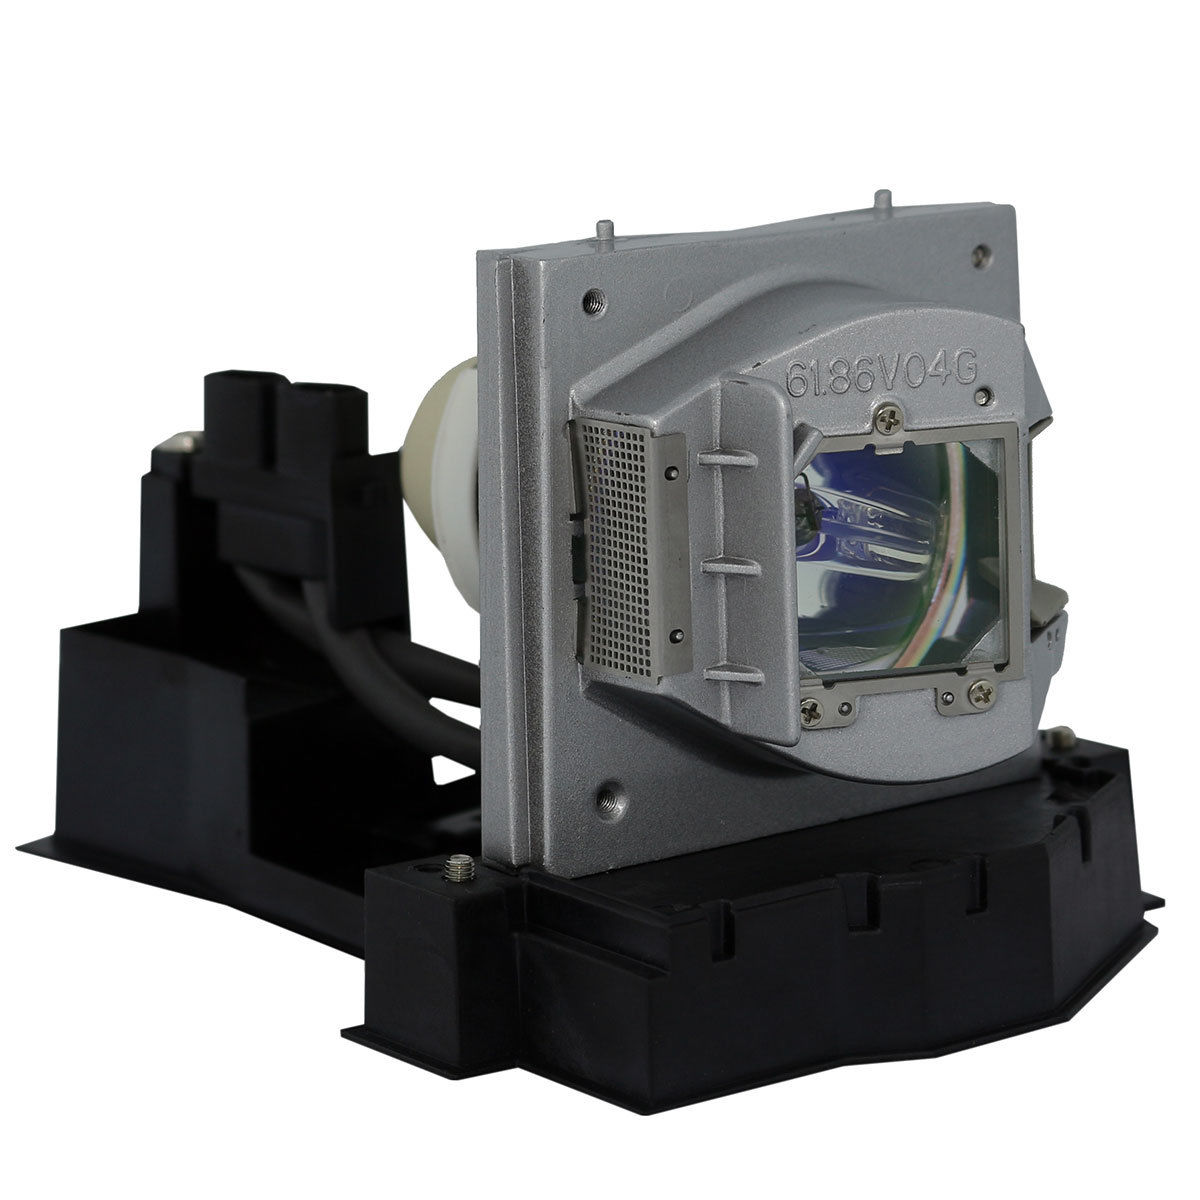 Projector Lamp Bulb EC.J6200.001 for Acer P5270 P5280 P5370W Projector Lamp Bulb with housing Free Shipping free shipping original projector lamp module ec j5500 001 for acer p5270 p5280 p5370w projectors